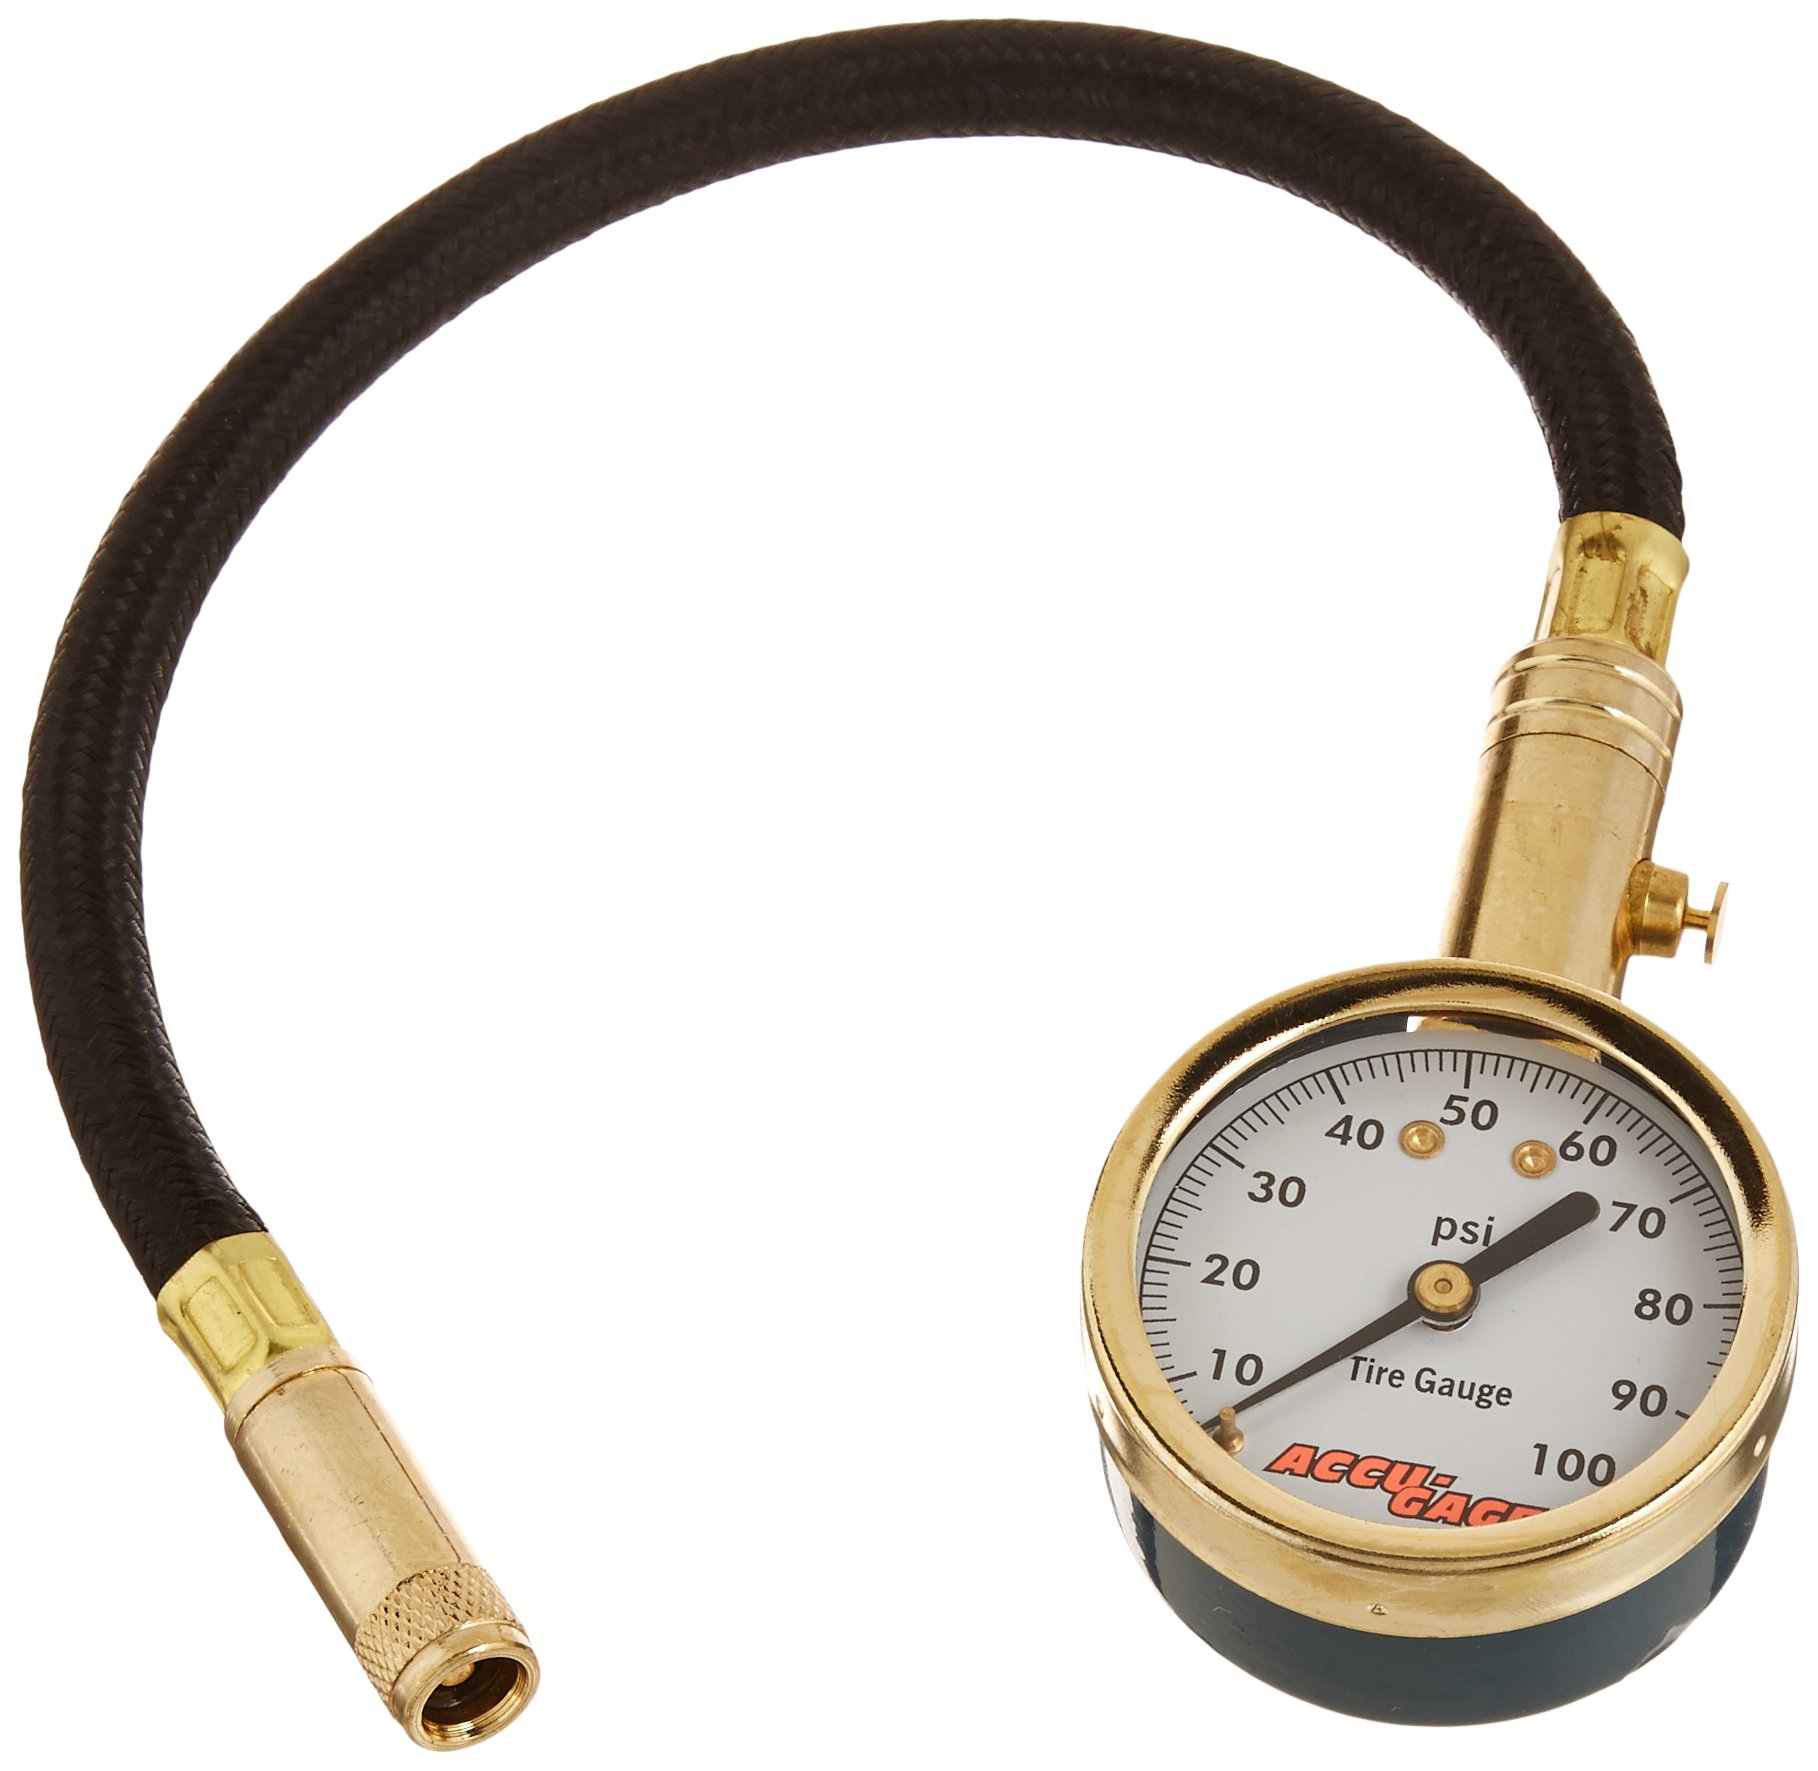 Accu-Gage H100X PSI Dial Tire Gauge by Accu-Gage (Image #1)